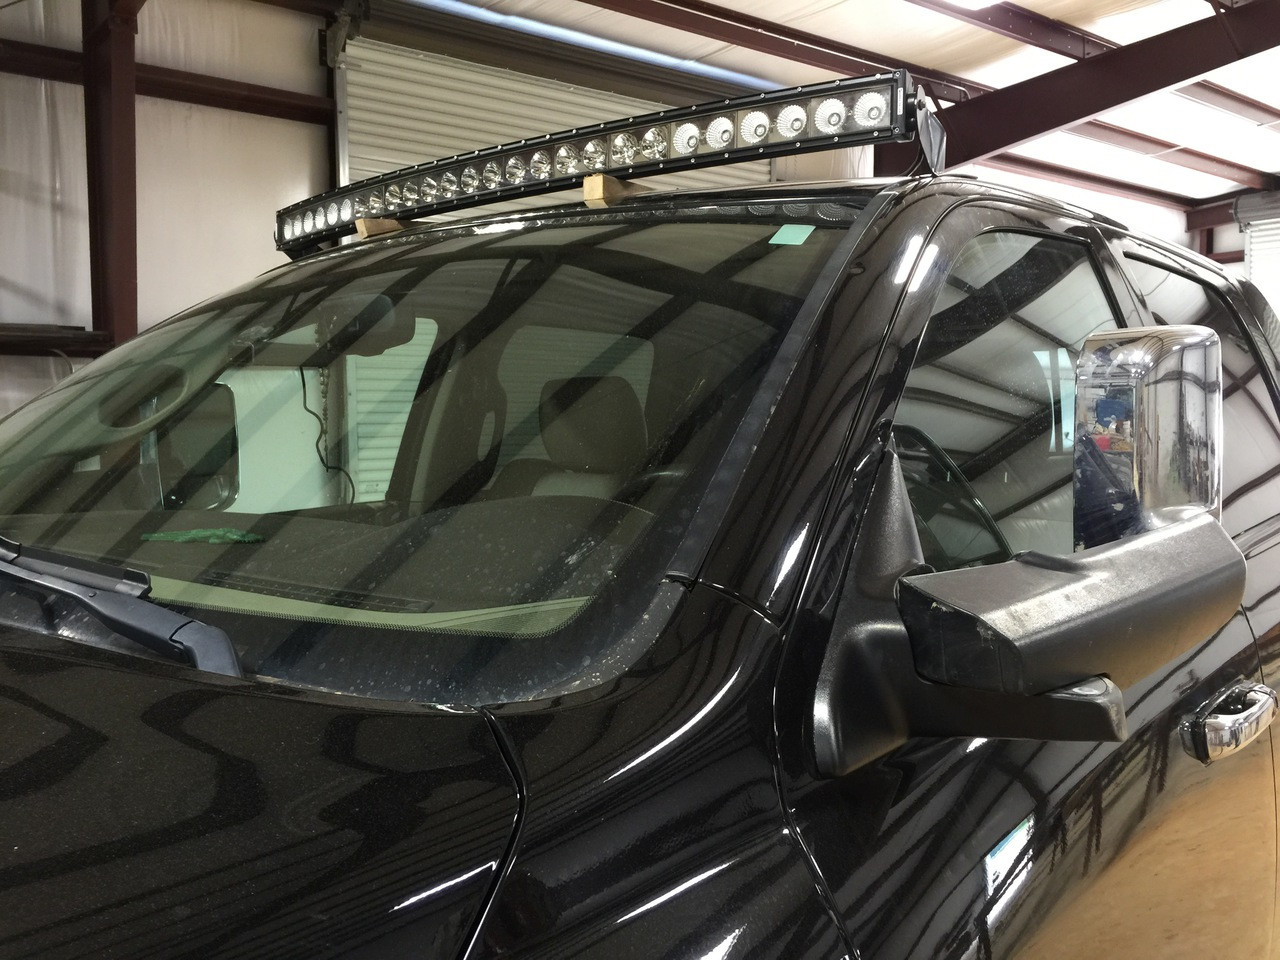 New Dodge Ram 50 Curved 54 Led Light Bar Roof And Brackets Wiring Harness Bracket Package Includes